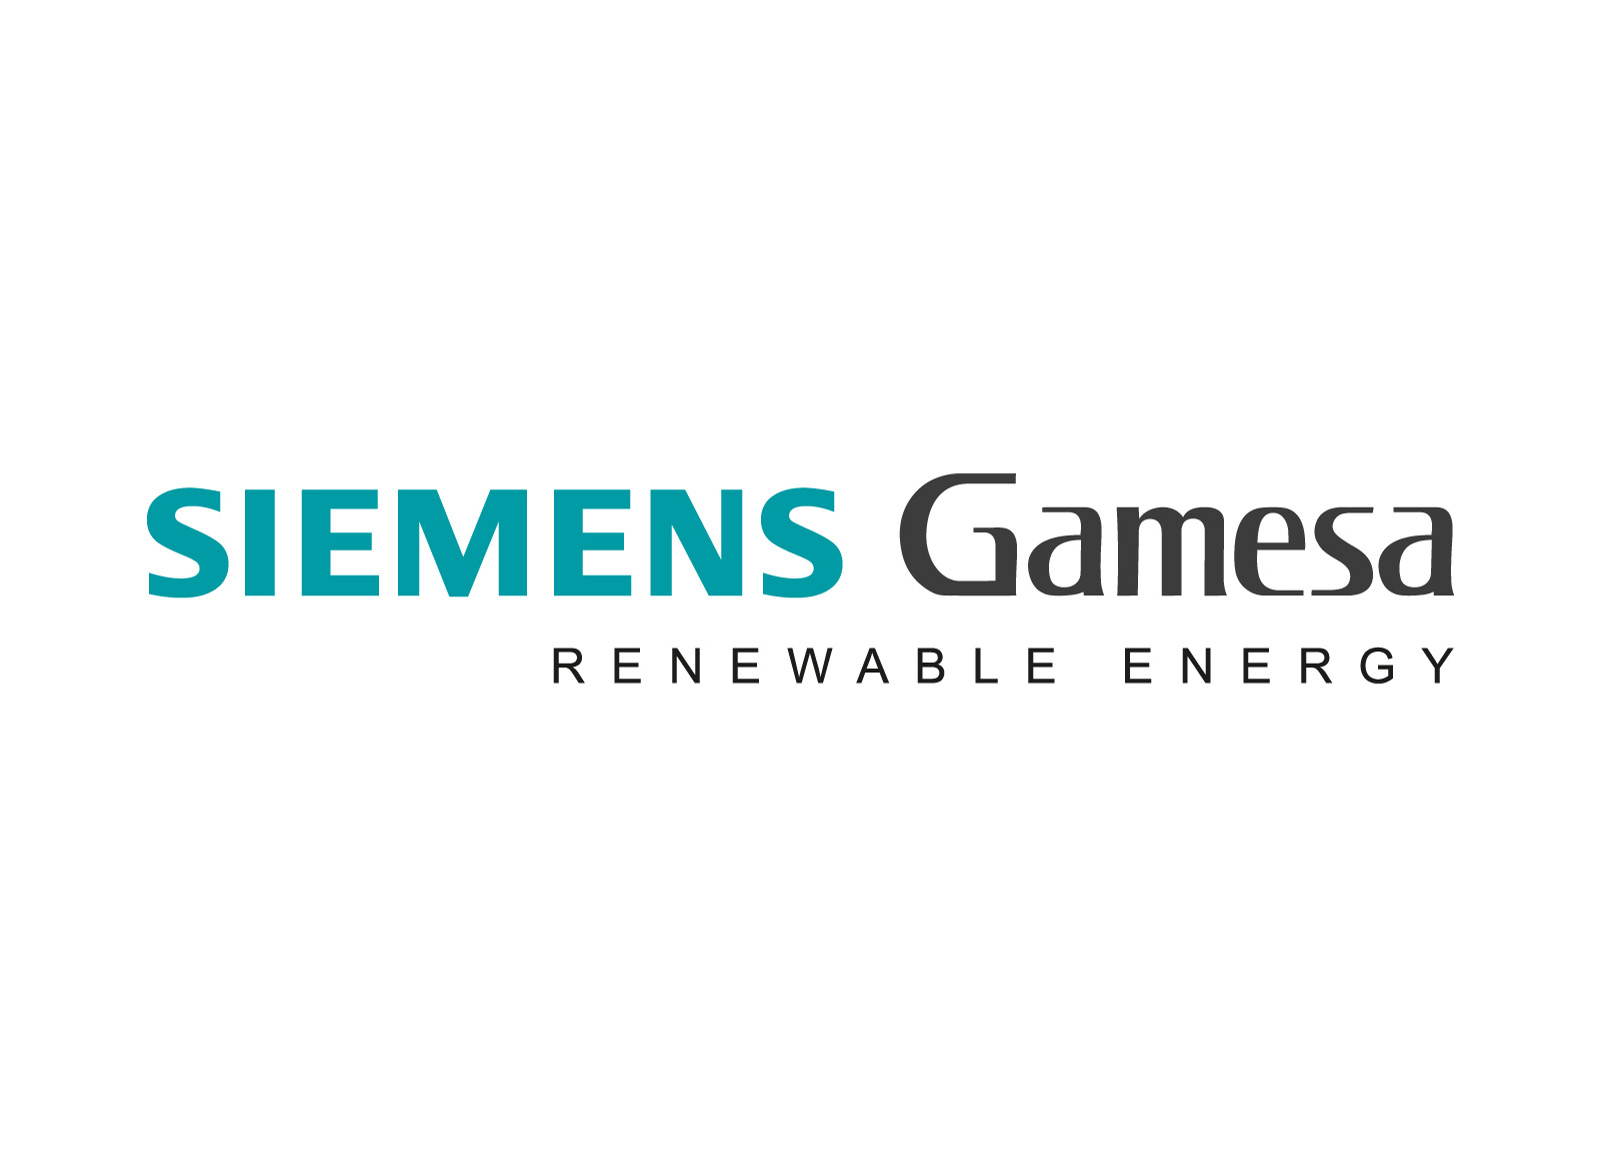 Siemens Gamesa commissions 10 MW solar project for Lakshmi Machine Works.